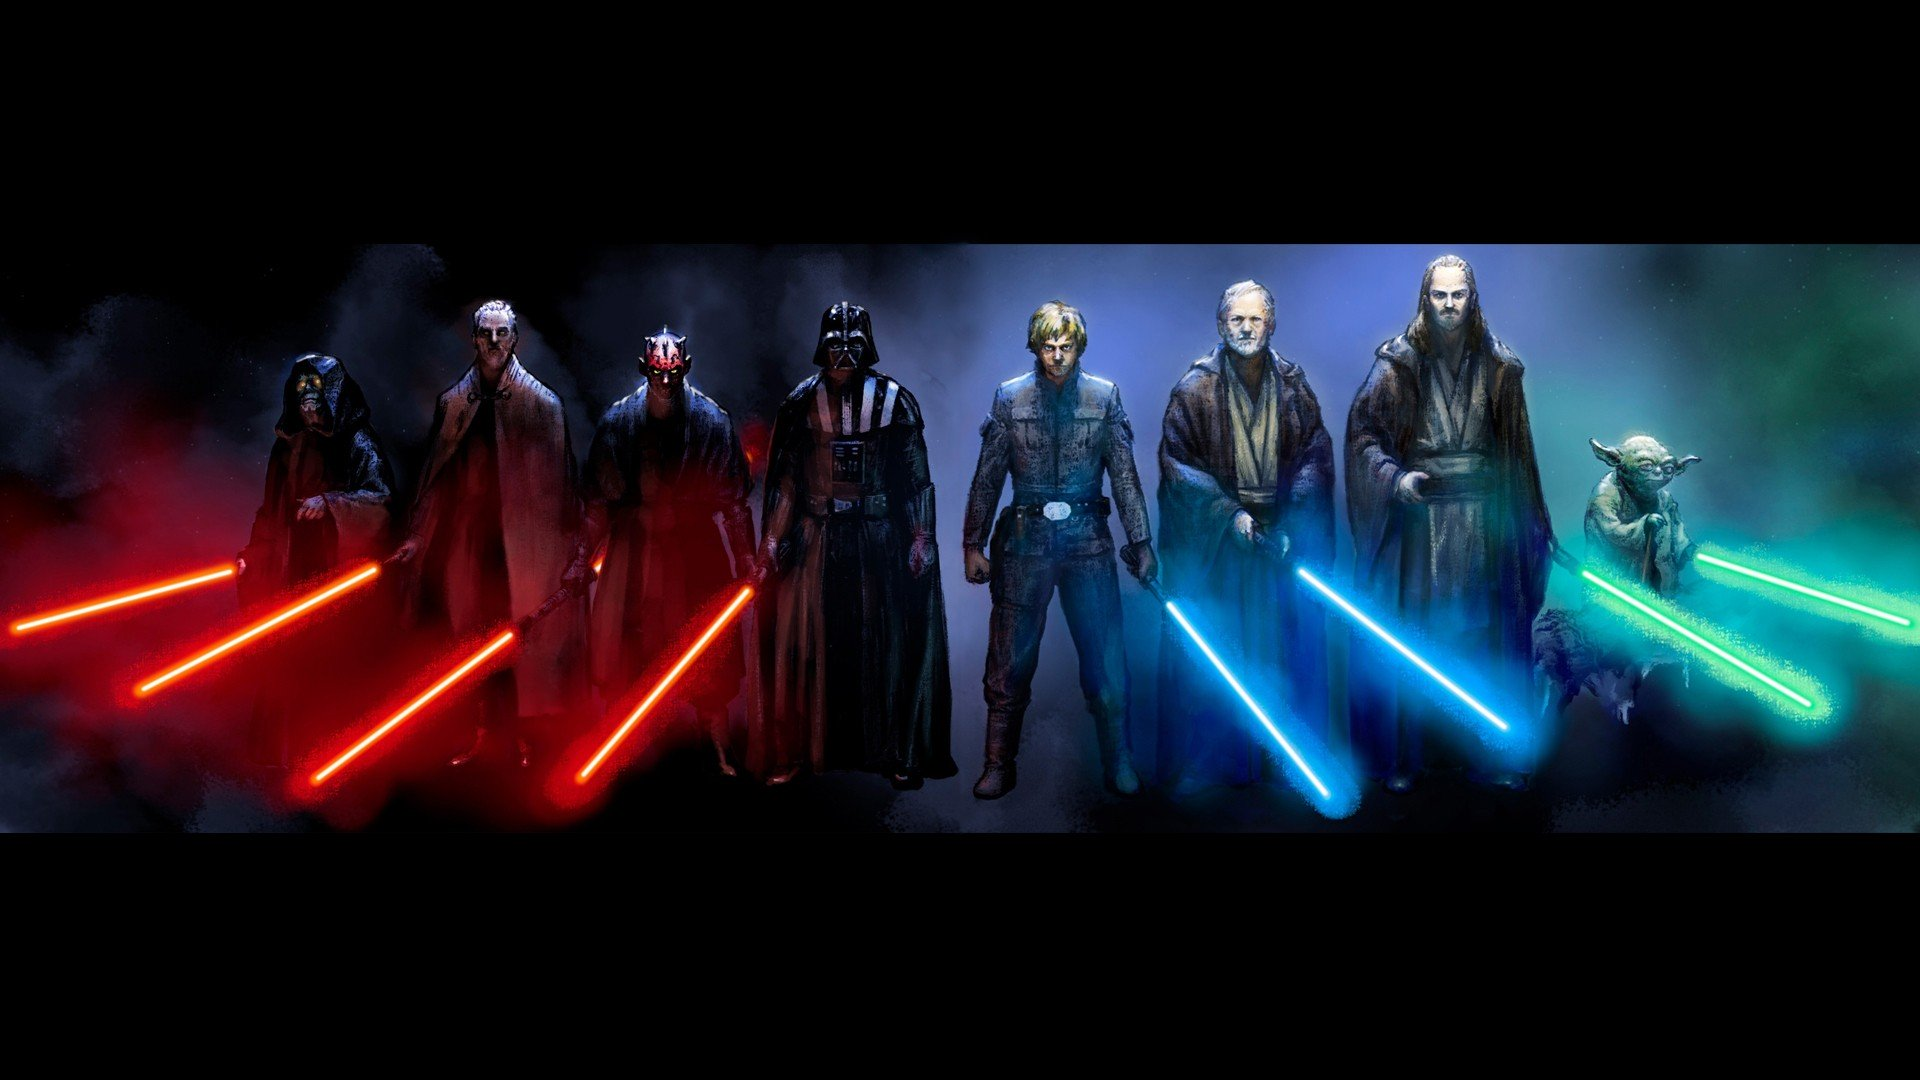 Star Wars Hd Wallpapers And Backgrounds 1920x1080